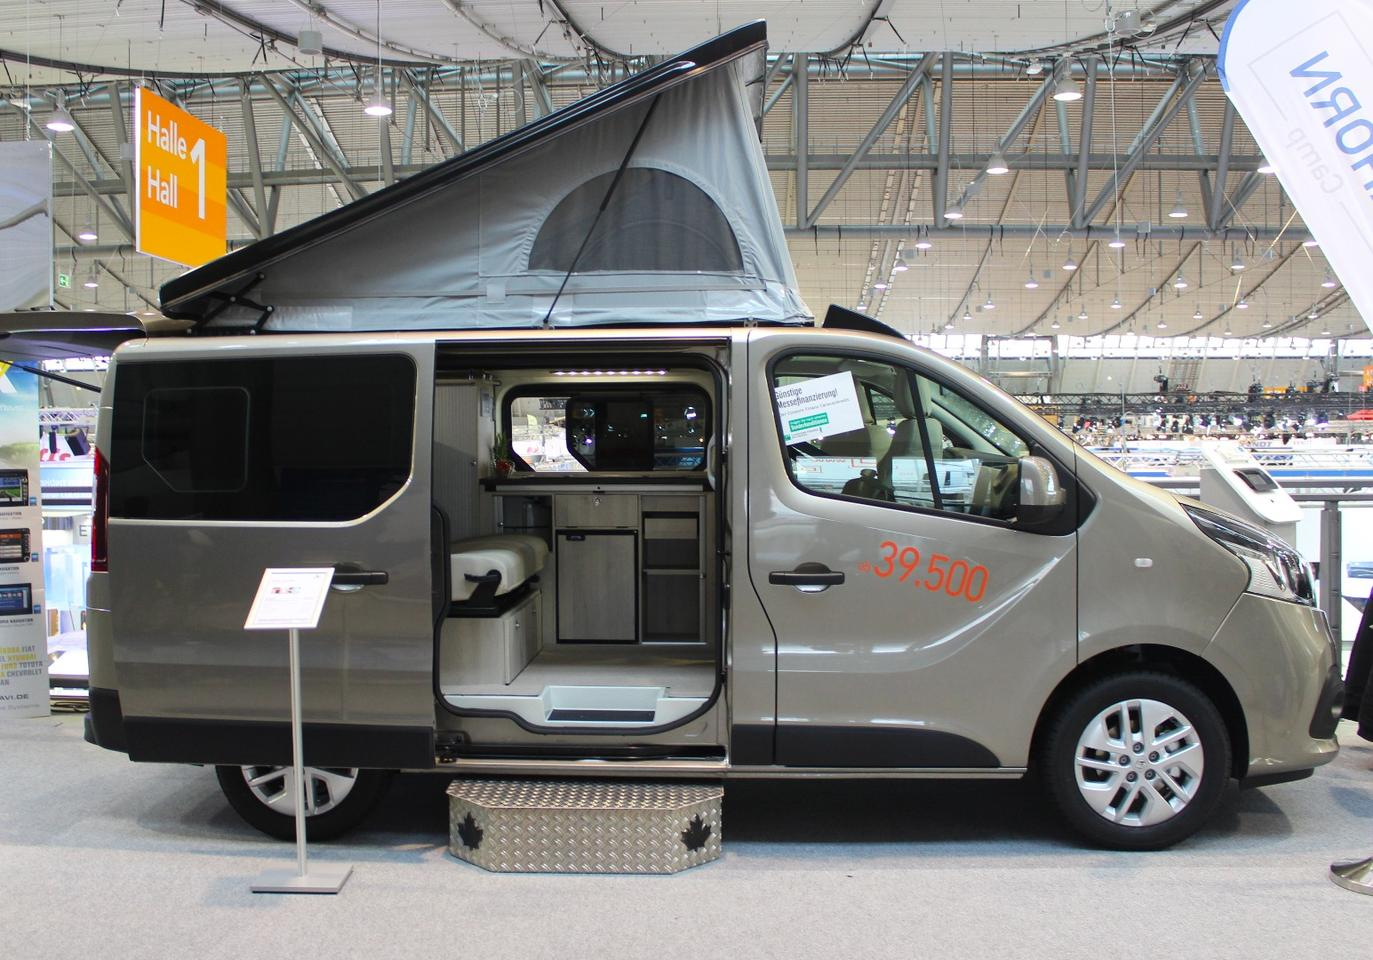 A simple but functional camper, the pop-top Ahorn Van City's advertised base price is €39,500, but this model was optioned up to €47,990